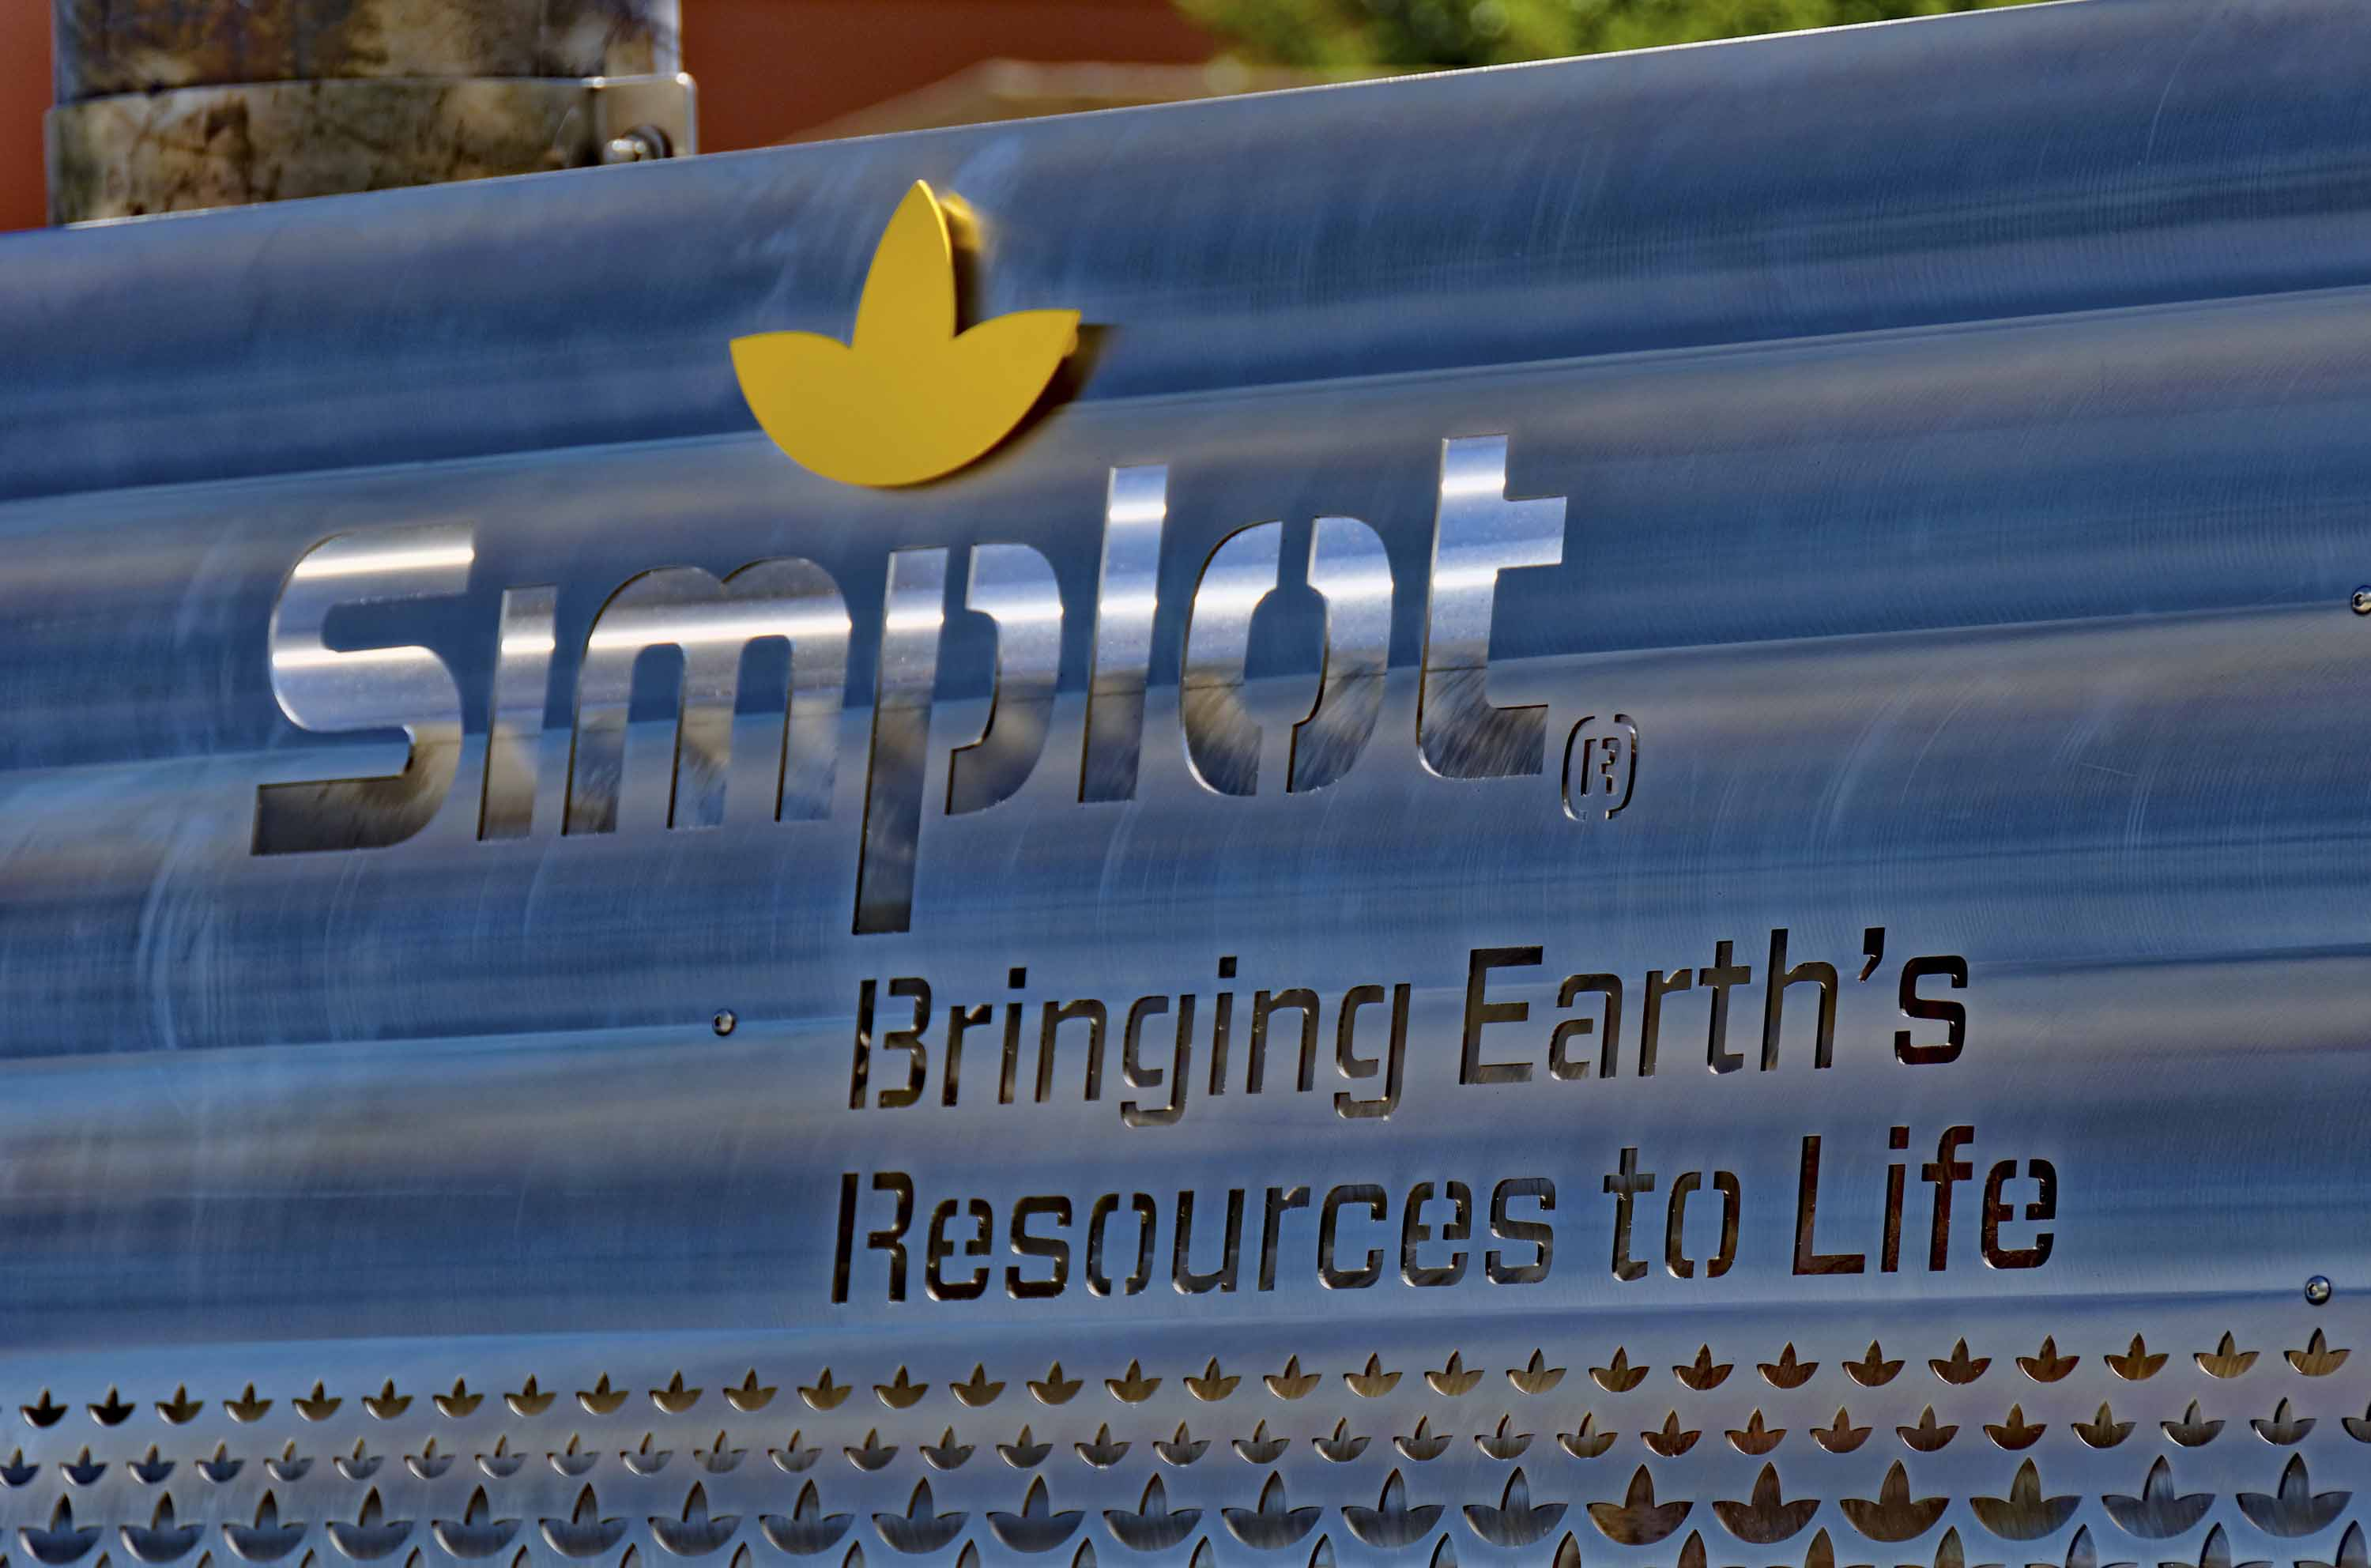 Idaho-based J.R. Simplot Company has acquired gene editing licensing rights that could one day be used to help farmers produce more crops and grocery store offerings such as strawberries, potatoes and avocados stay fresher longer. The technology was developed by the Broad Institute at Massachusetts Institute of Technology and Harvard University.  (J.R. Simplot Company via AP)